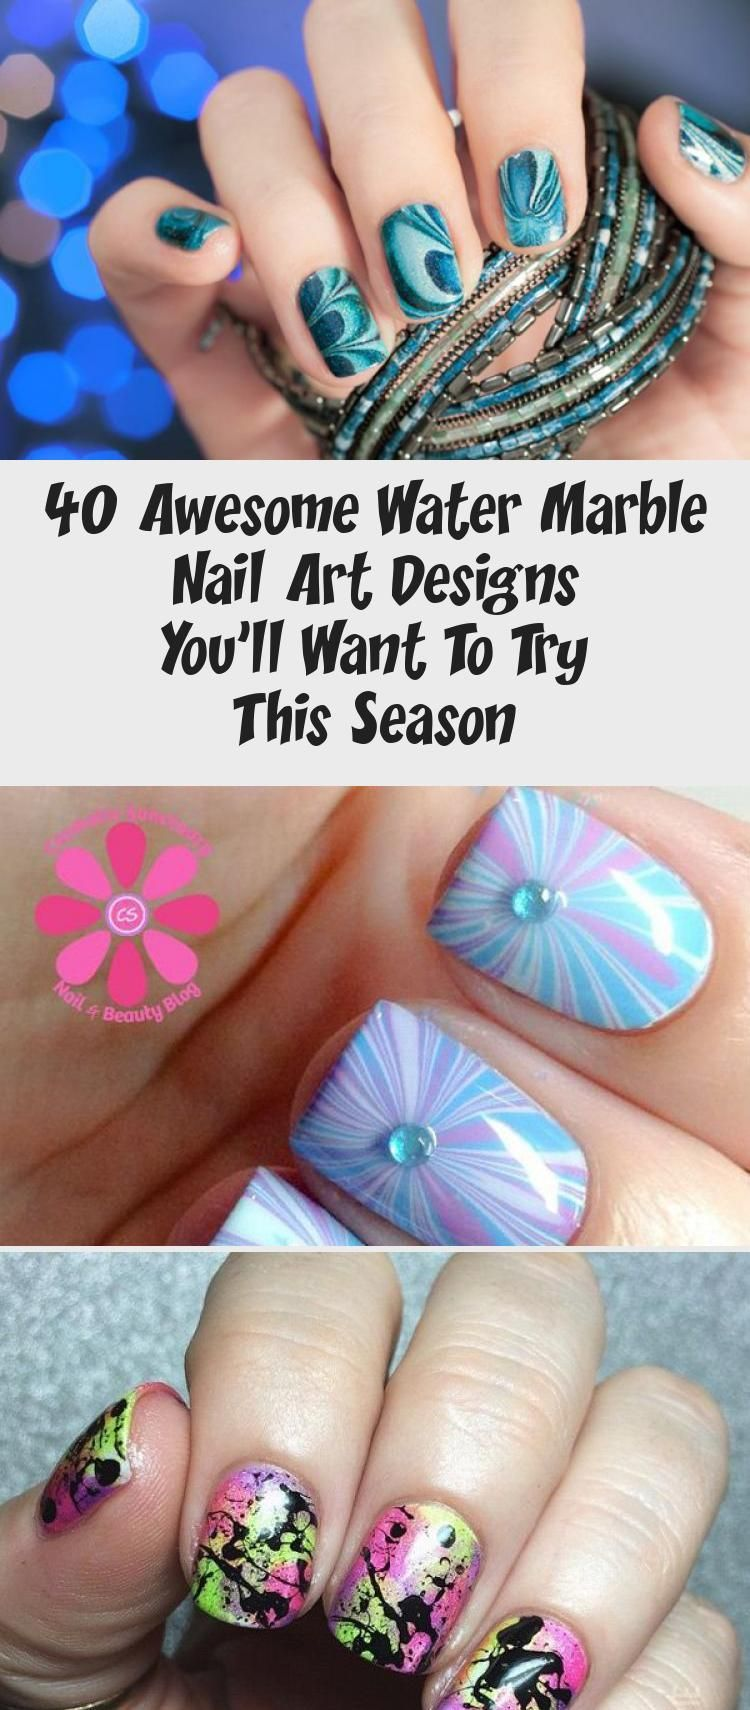 40 Awesome Water Marble Nail Art Designs You Ll Want To Try This Season Water Marble Nail Art Marble Nail Art Dark Nail Designs